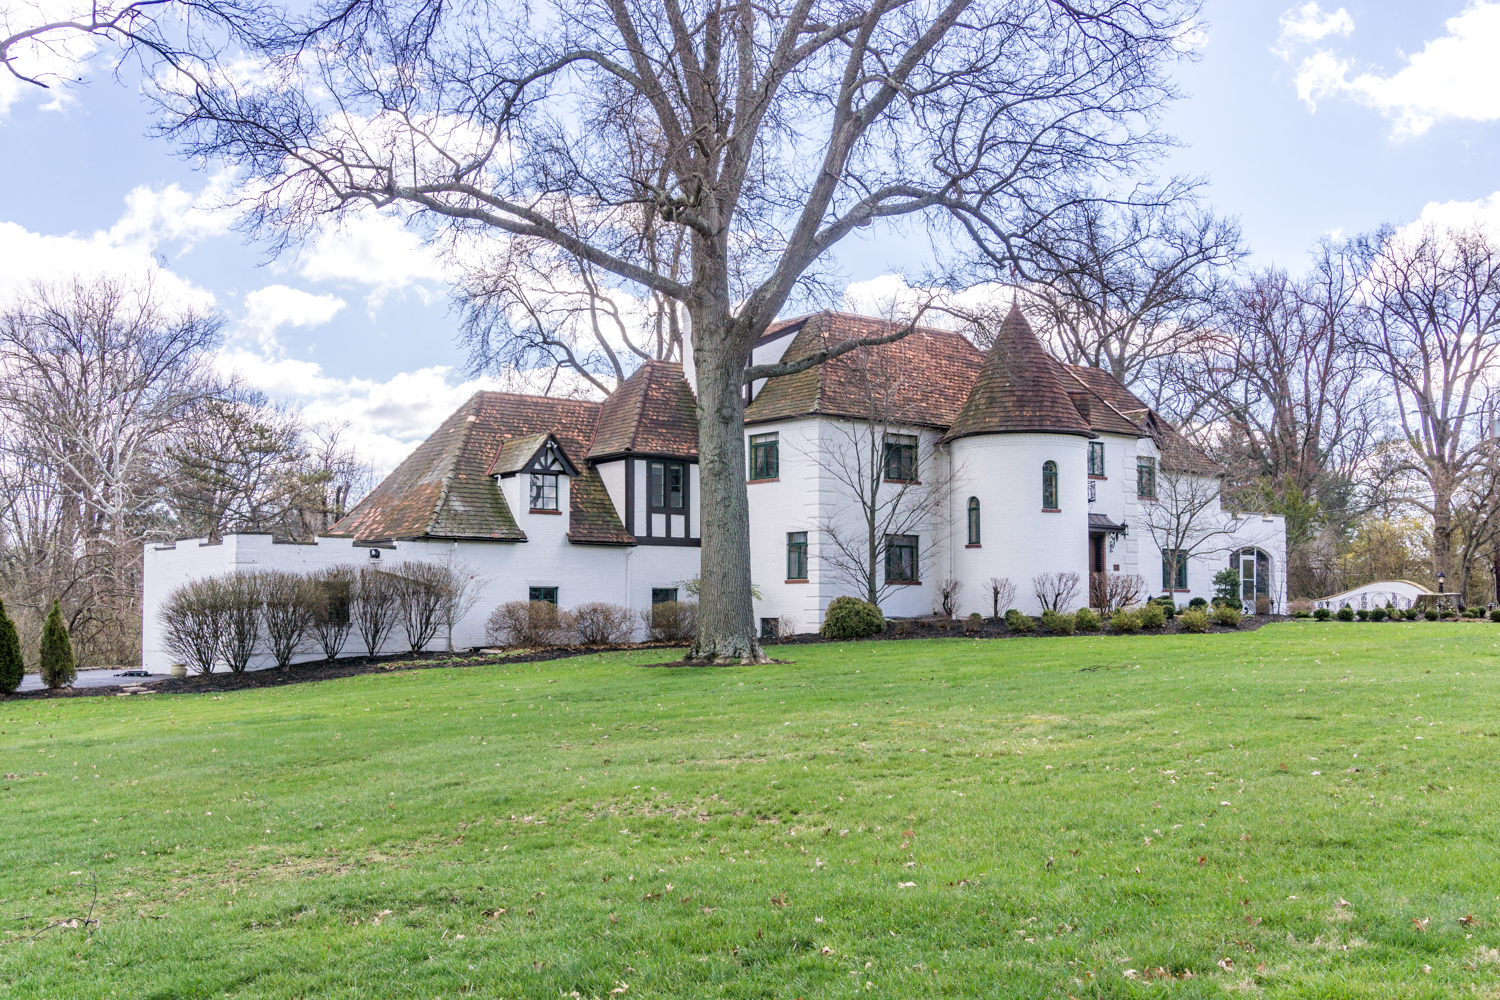 1550 Neeb Road, better known as the Bappert House, was built in 1936 for Kroger VP John Bappert and his wife, Cecilia, in the Tudor Revival style. It's over 4300 square feet and has four bedrooms and five bathrooms (three full and two half). The home is currently on the market for $449,900, listed by the Bisher Group at Coldwell Banker West Shell. / Image: Chris Farr, The First Showing // Published: 4.27.18